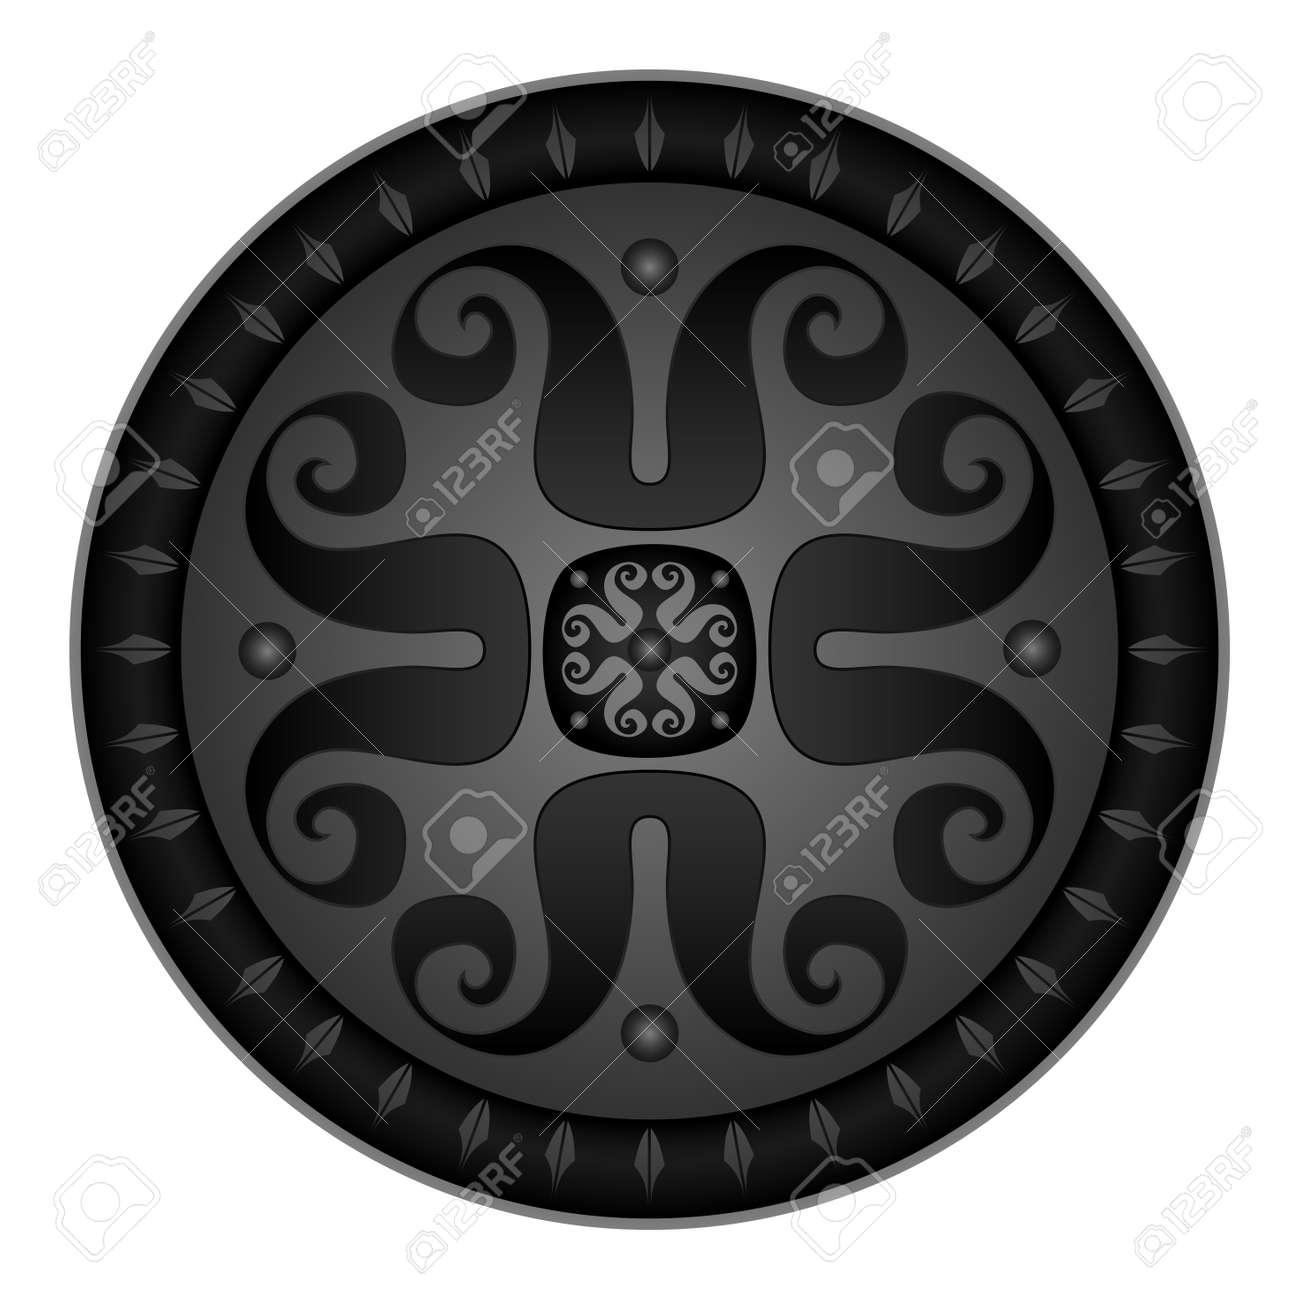 Vector illustration of round medieval shield, isolated on white background Stock Vector - 17844642